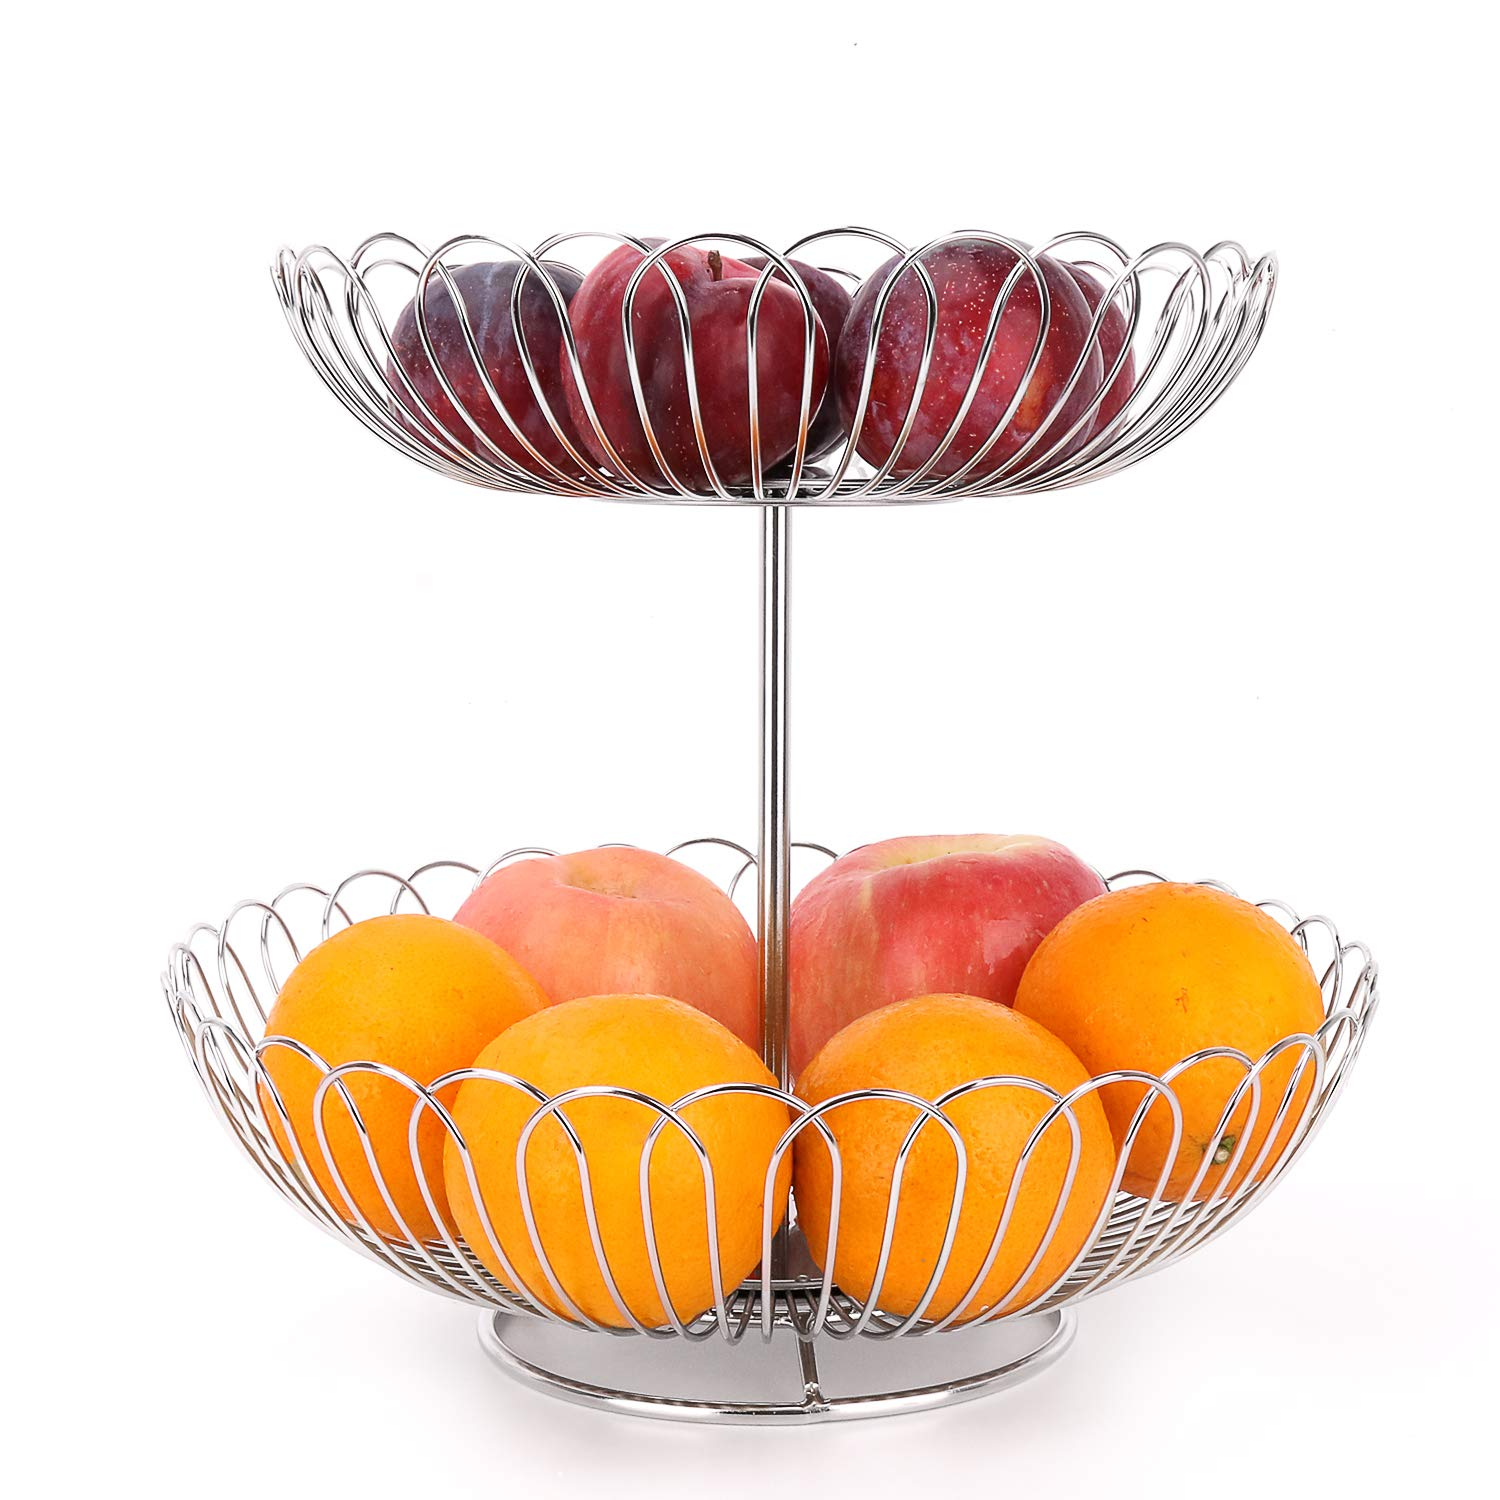 Stainless Steel 2 Tier Wire Fruit Basket Bowl for Kitchen Counter Stand with Bread by LANEJOY (Image #3)